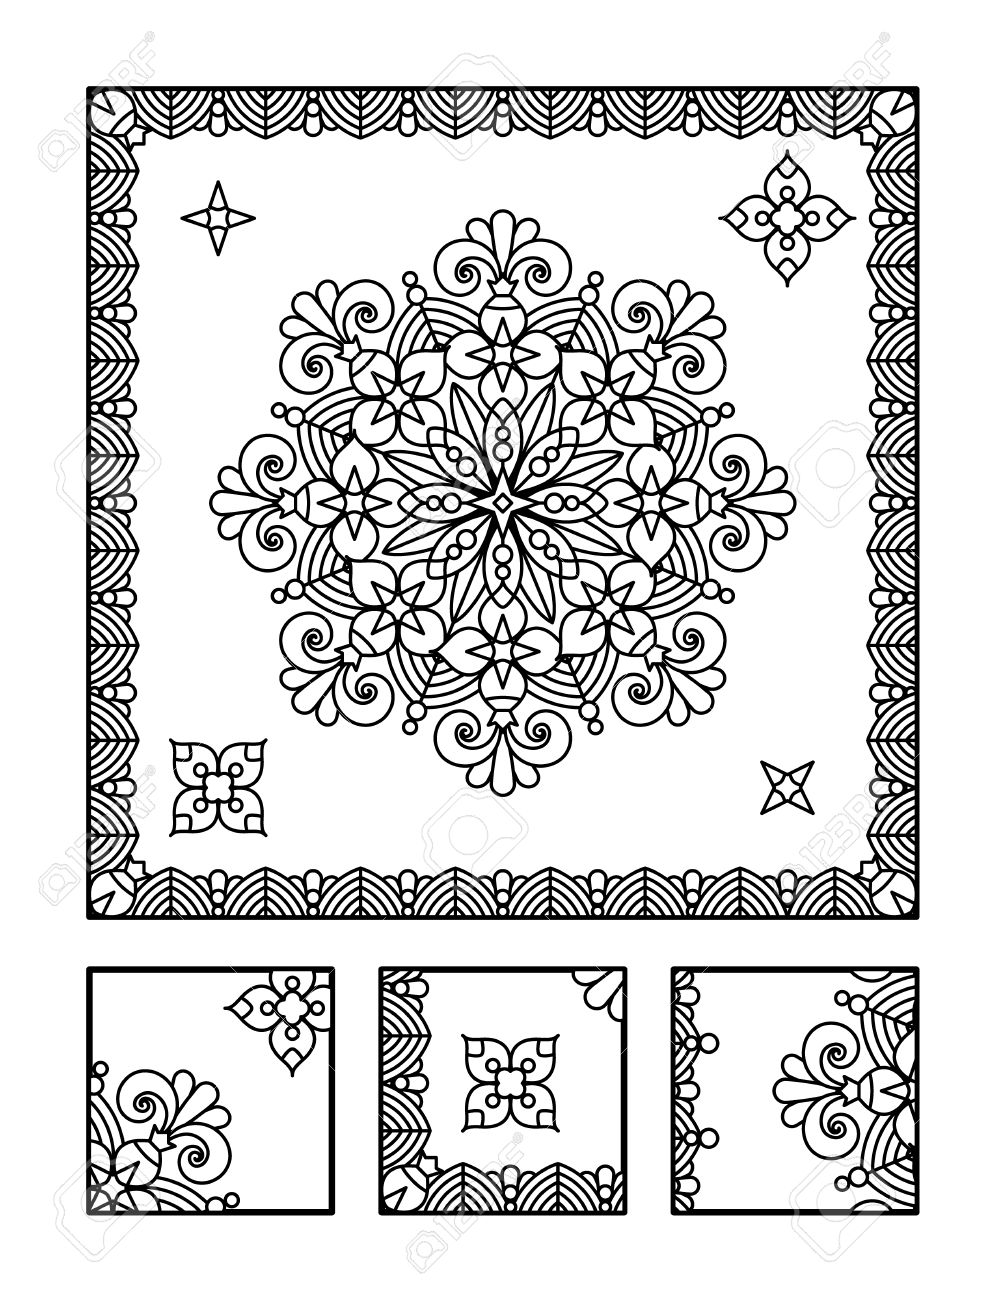 framed mandala coloring page for adults children ok too and visual puzzle puzzle directions find the